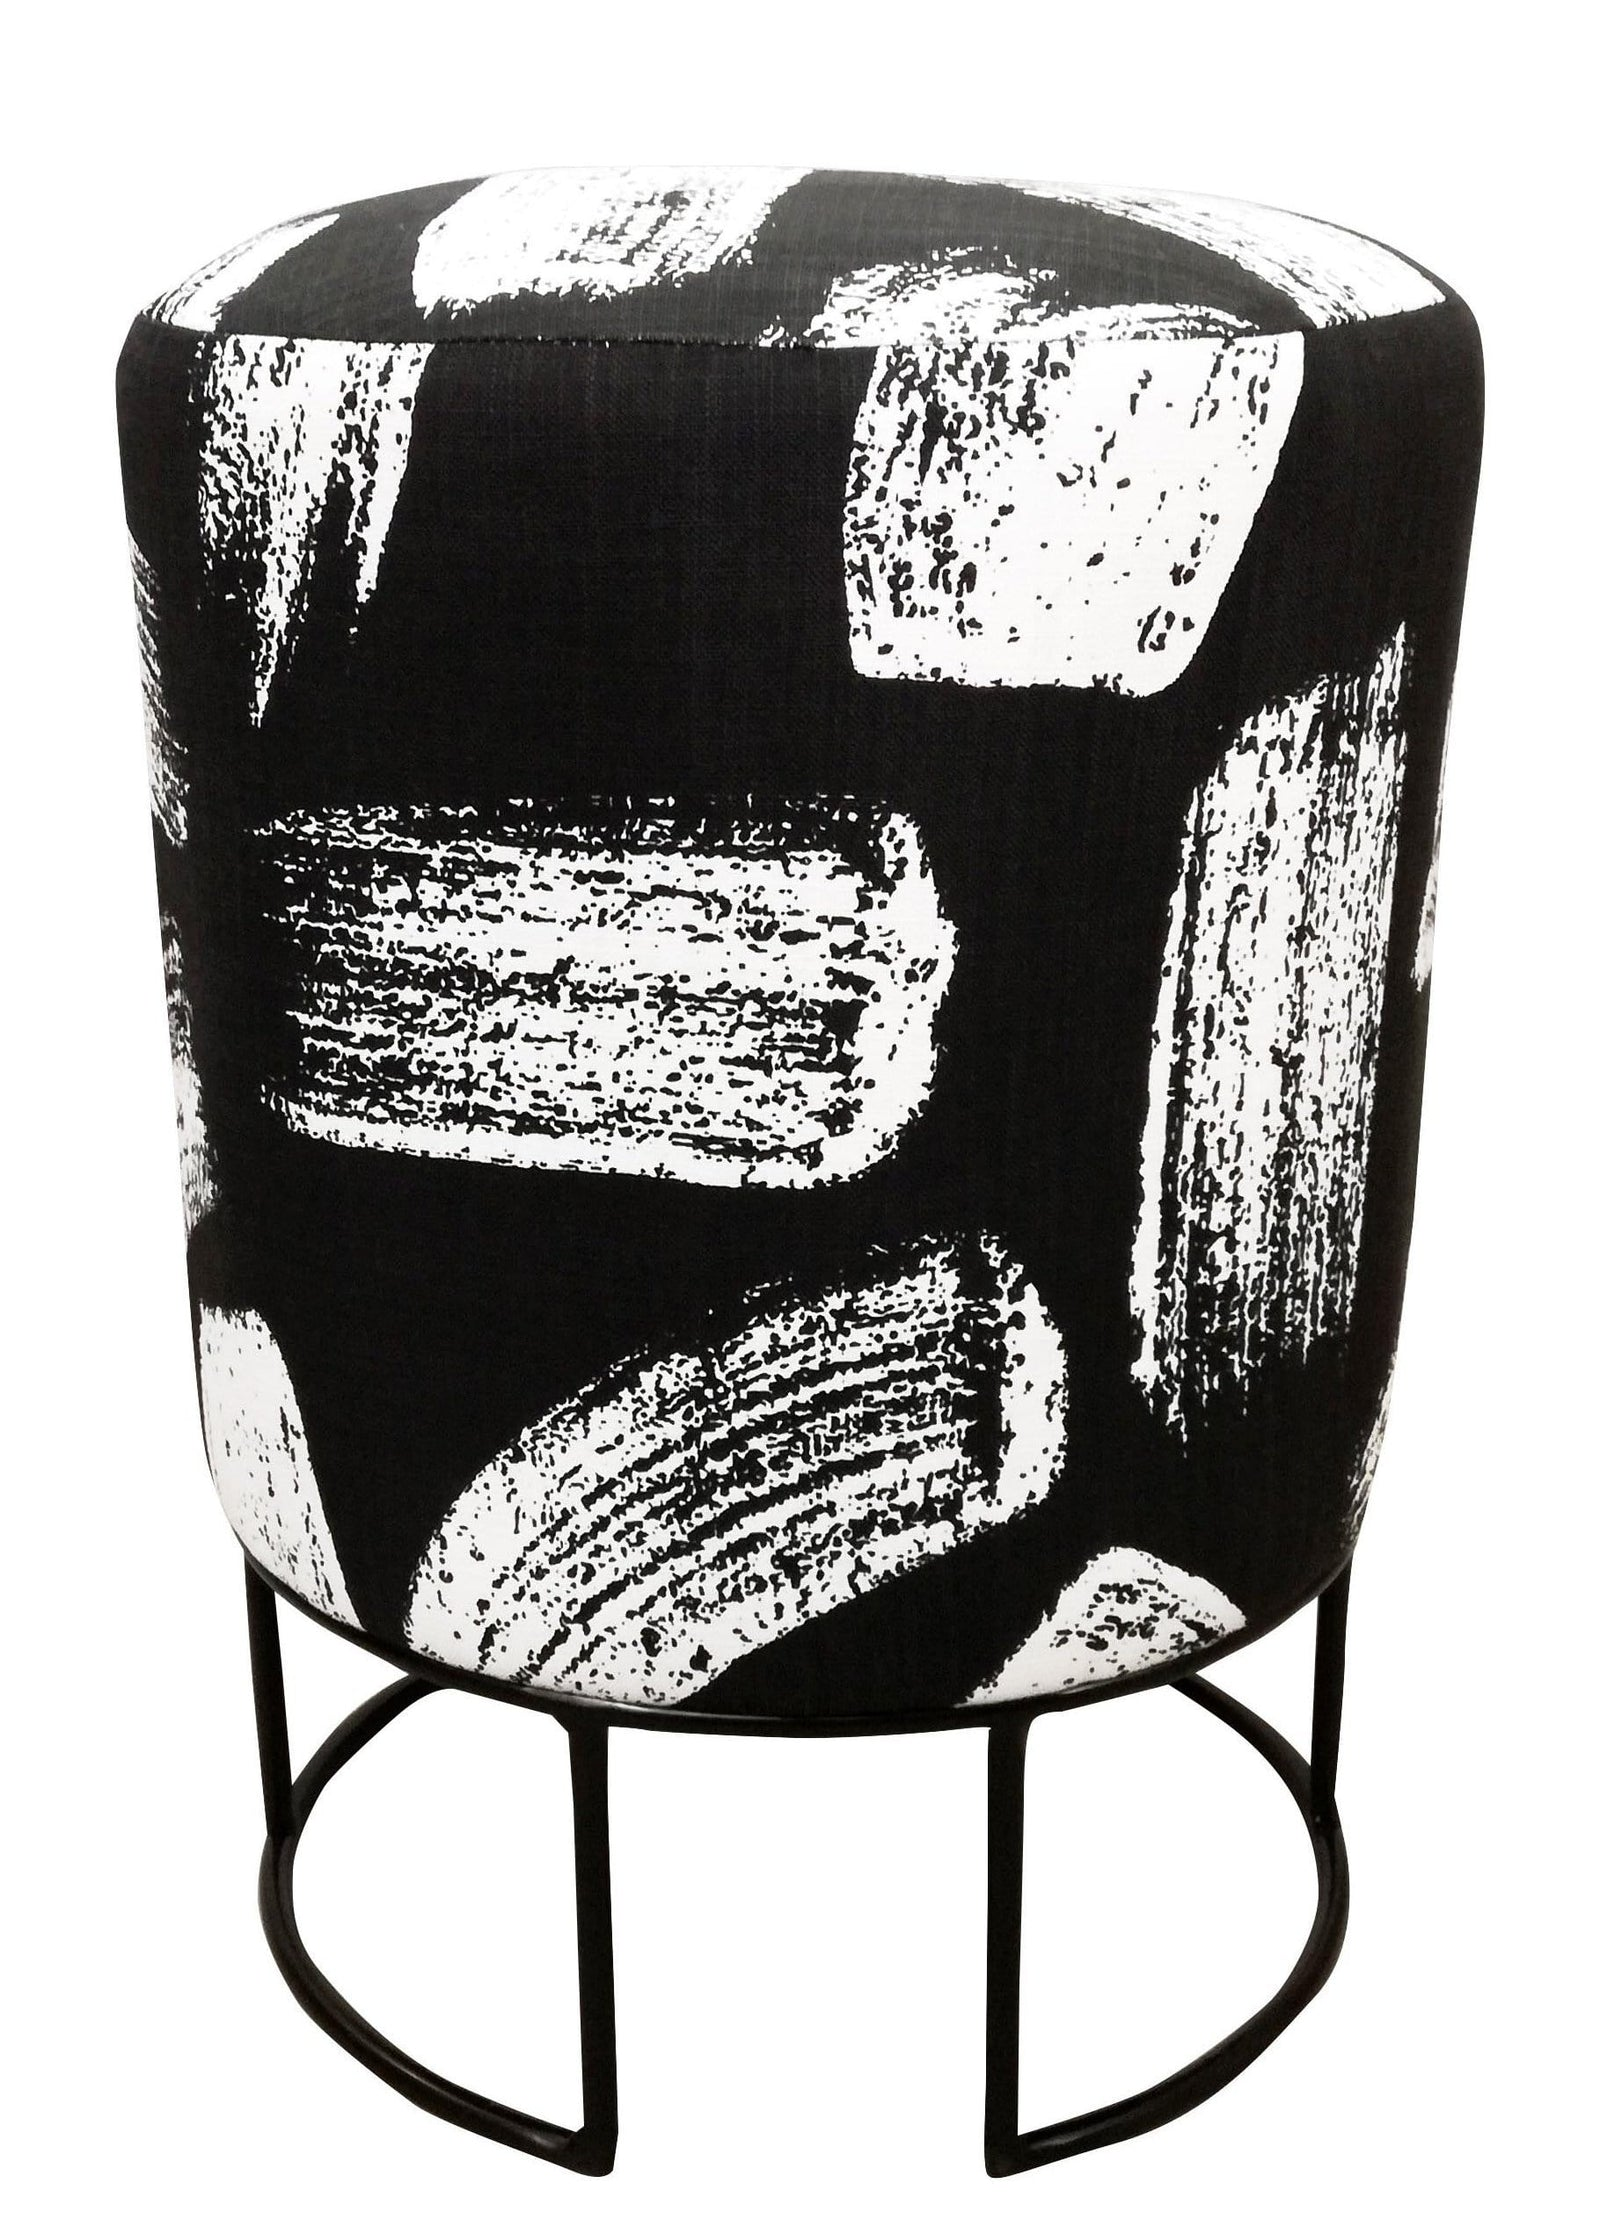 Undu Stool, Black Epoxy with Brushstrokes Black